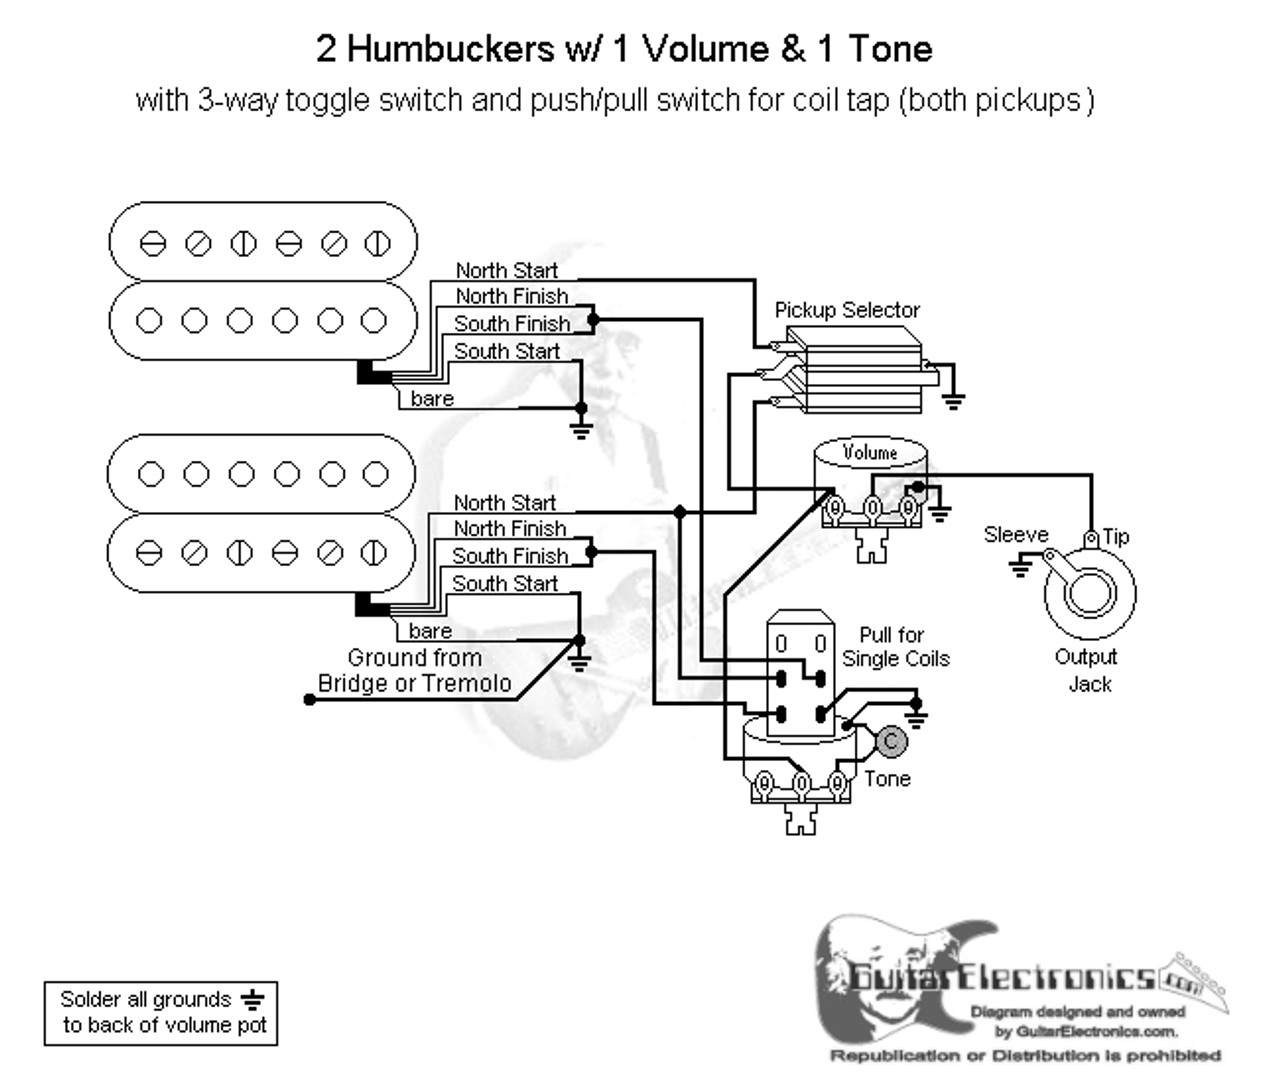 2 humbuckers 3 way toggle switch 1 volume 1 tone coil tap  guitar wiring diagram two humbuckers and bridge #4